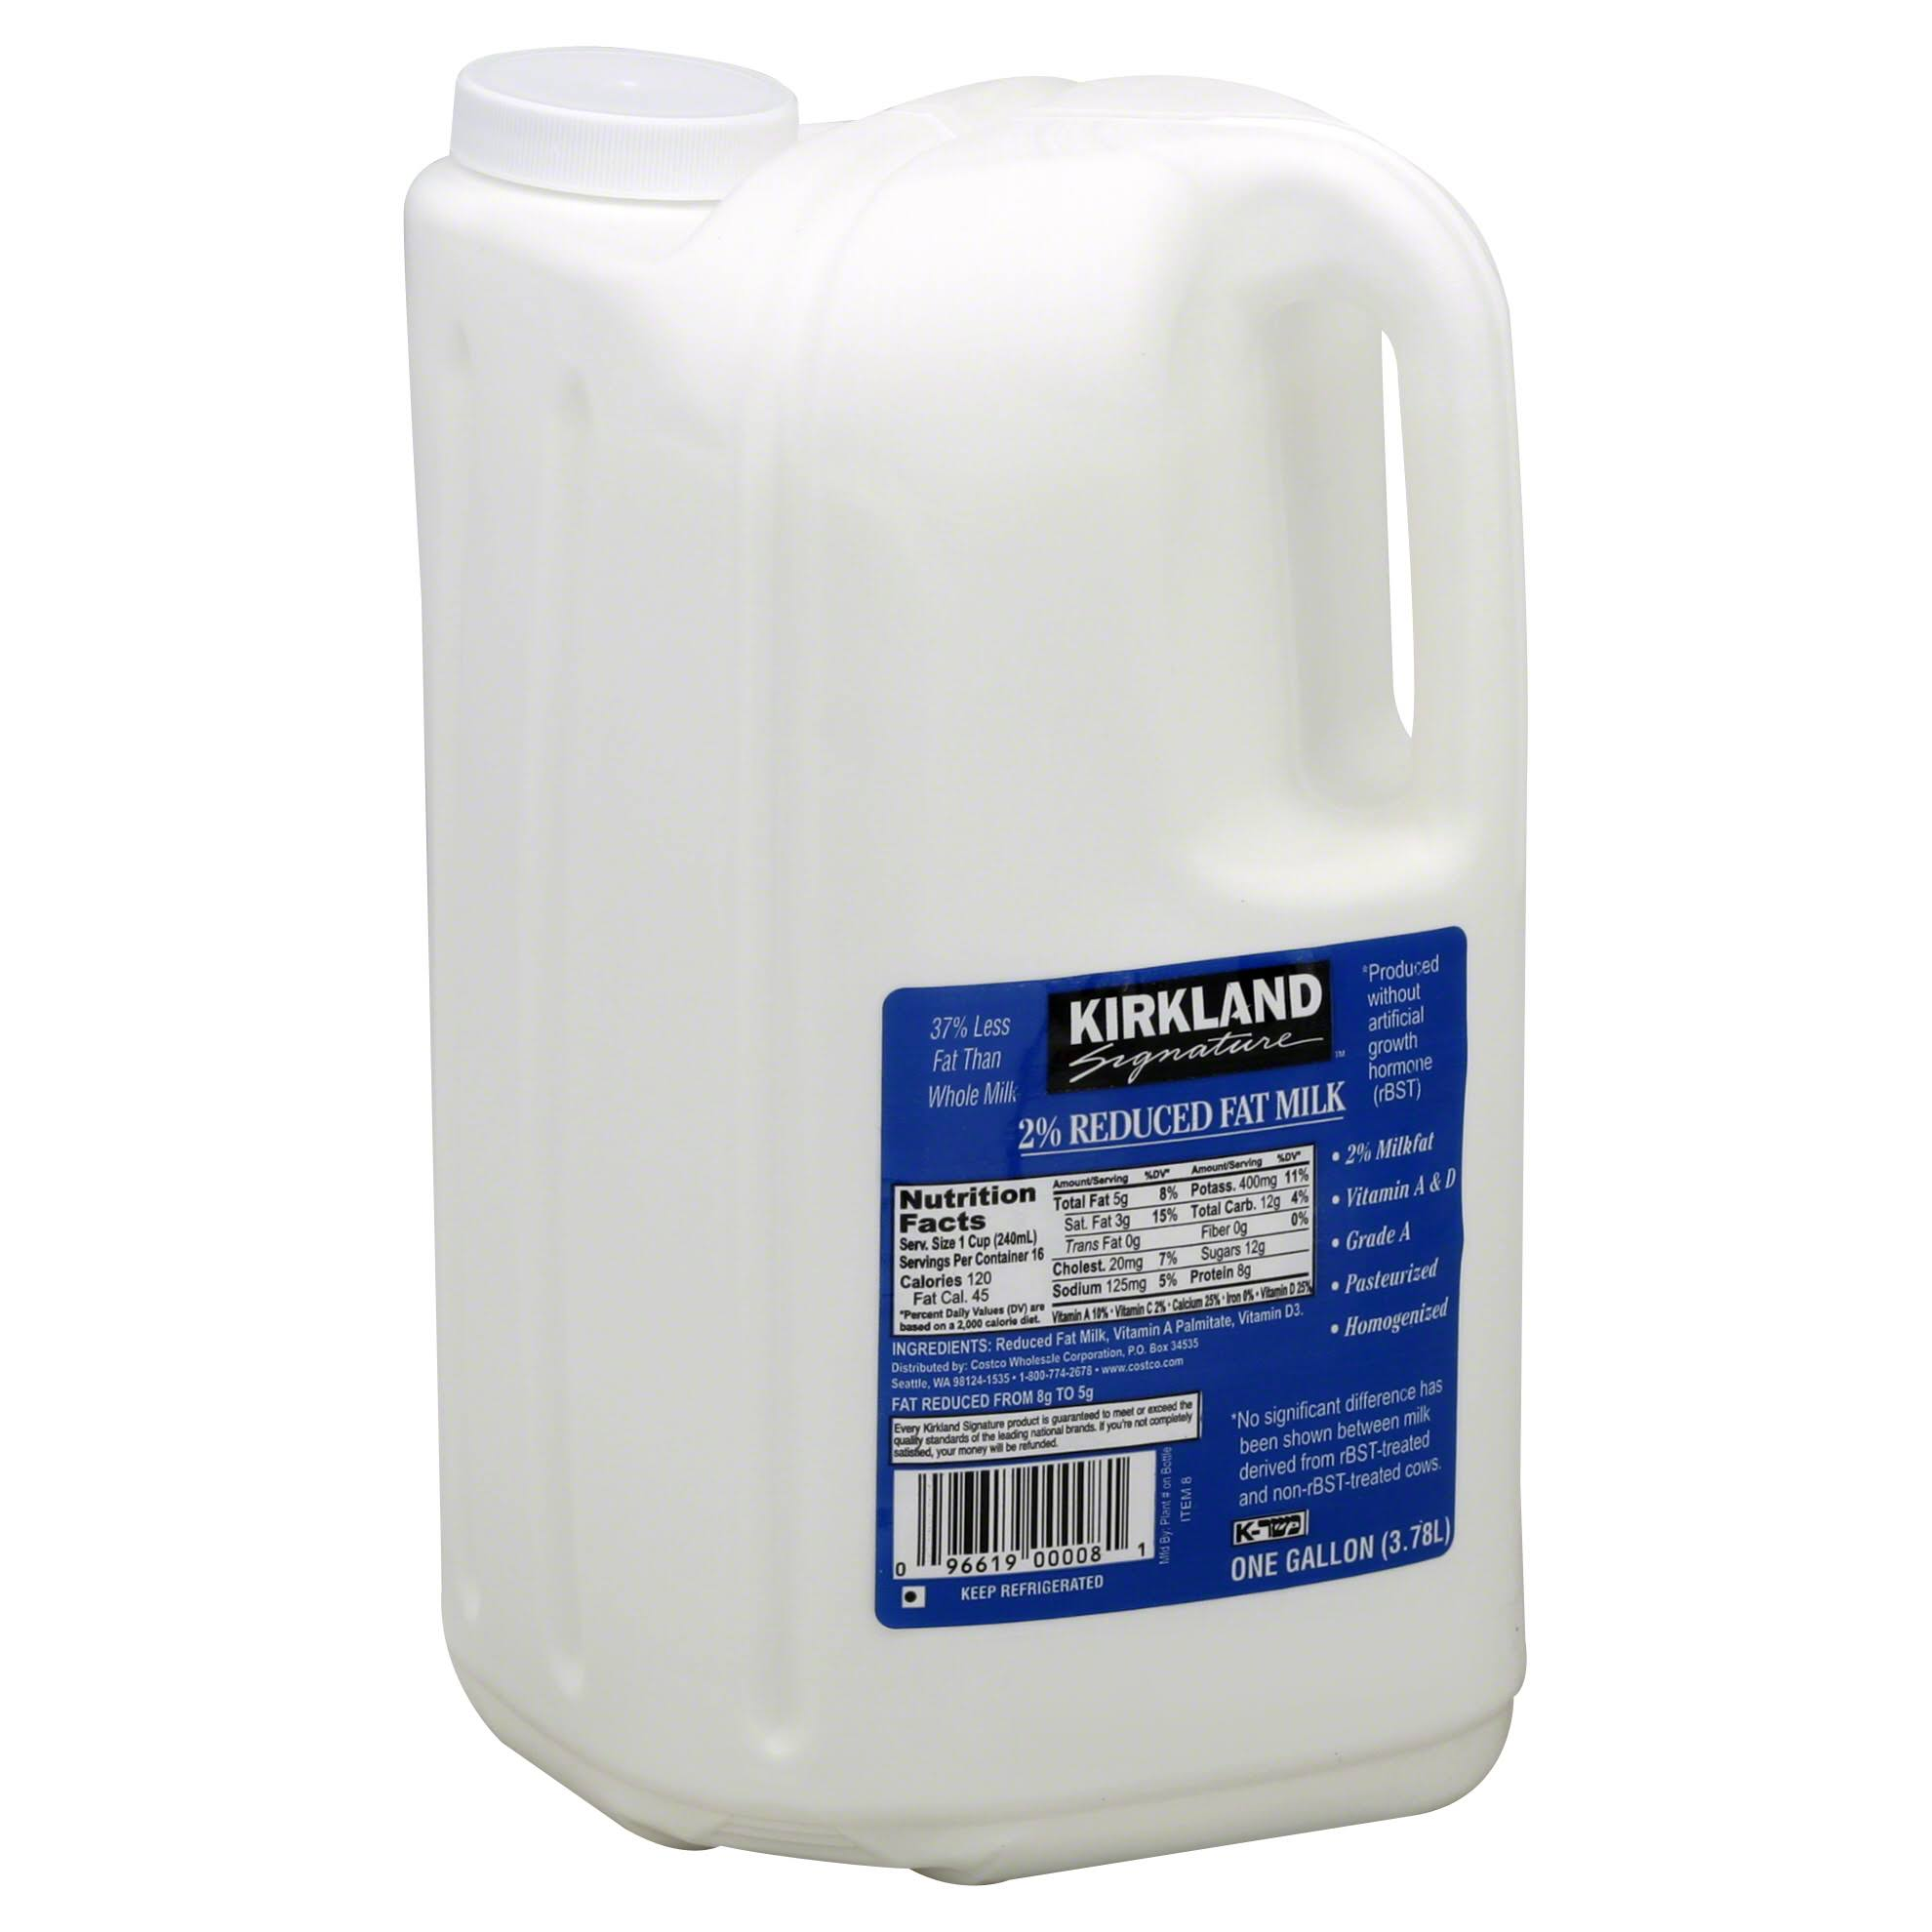 Kirkland Signature Milk, Reduced Fat, 2% Milkfat - 1 gl (3.78 lt)